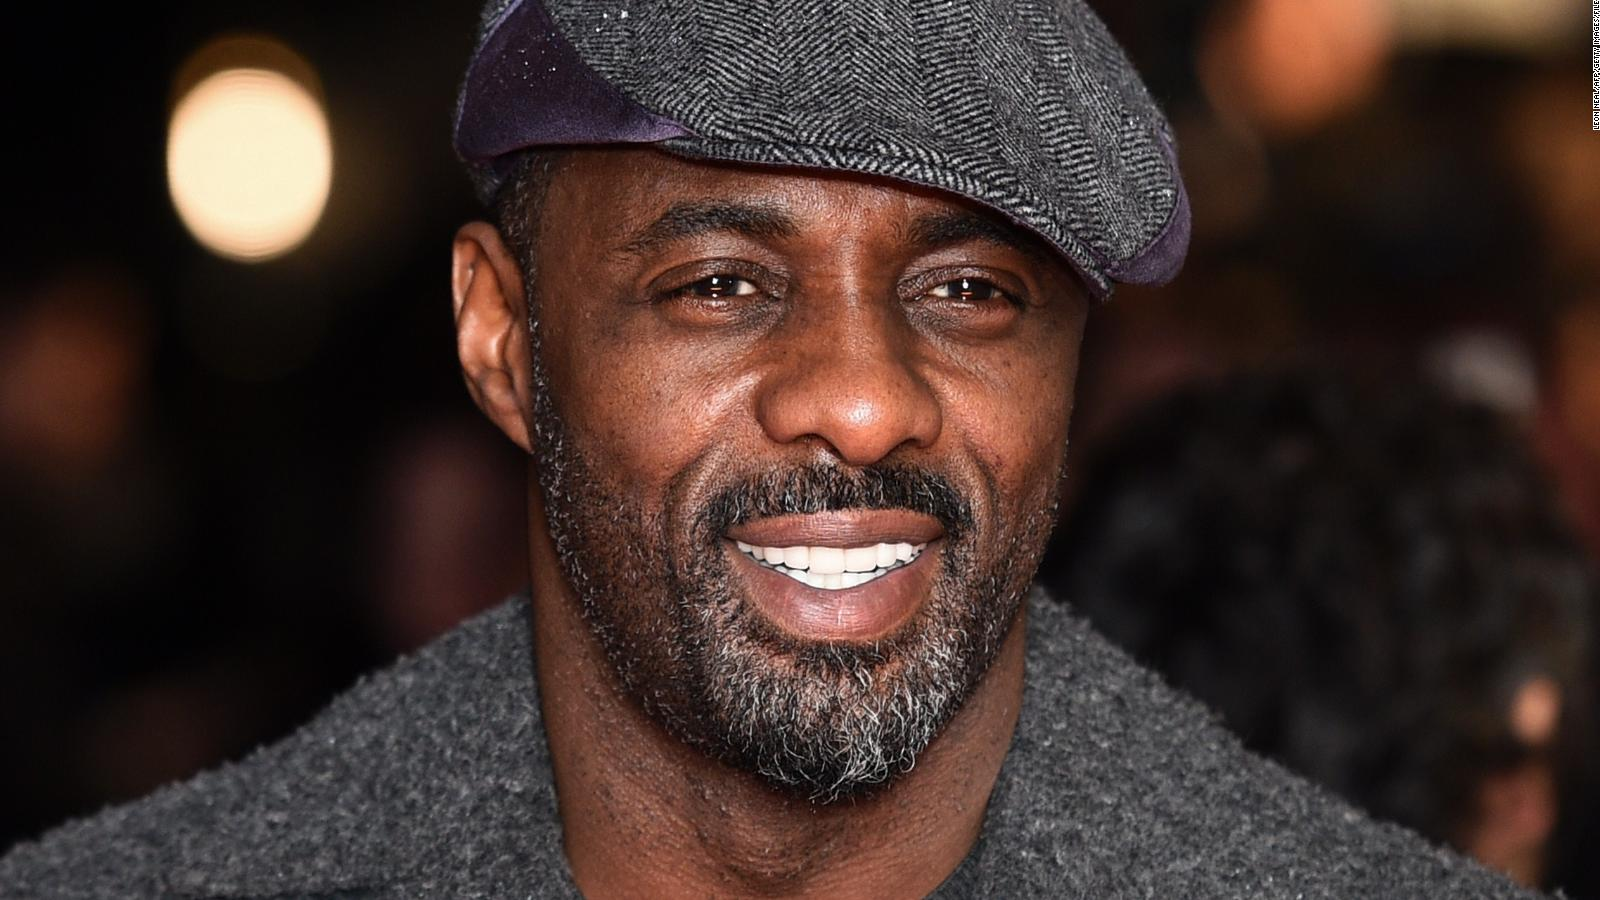 Idris Elba Ethnicity, Race, and Nationality